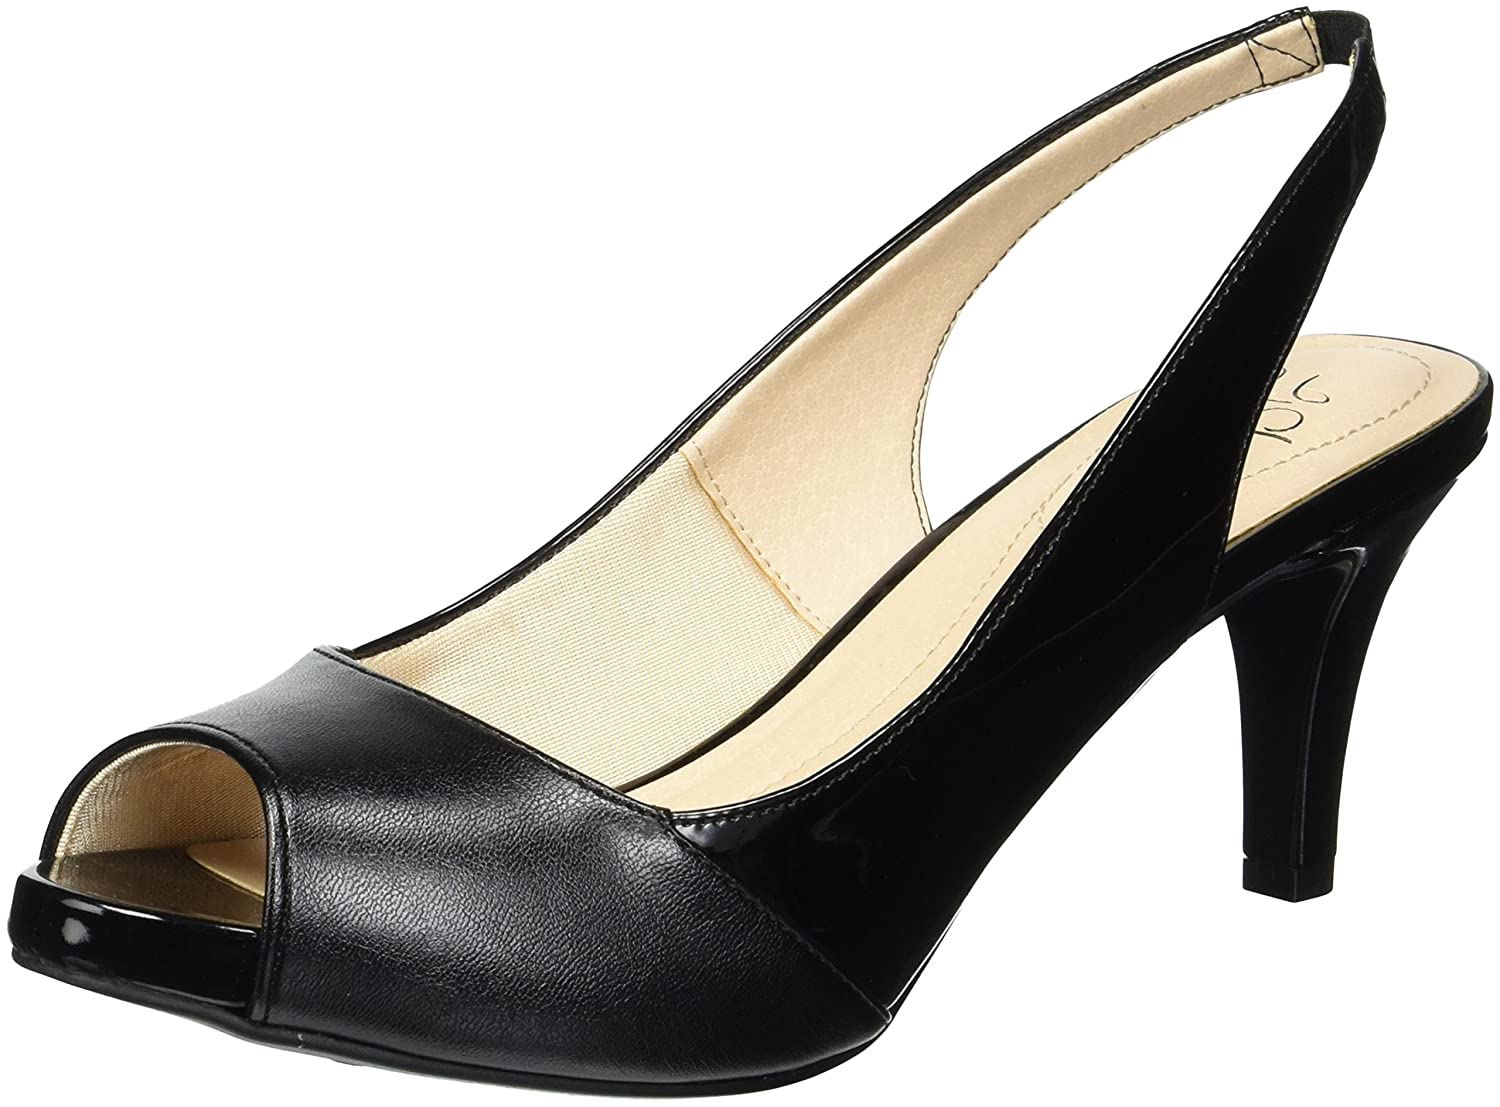 LifeStride Women's Tannis Pump B077633M6V 10 W US|Black